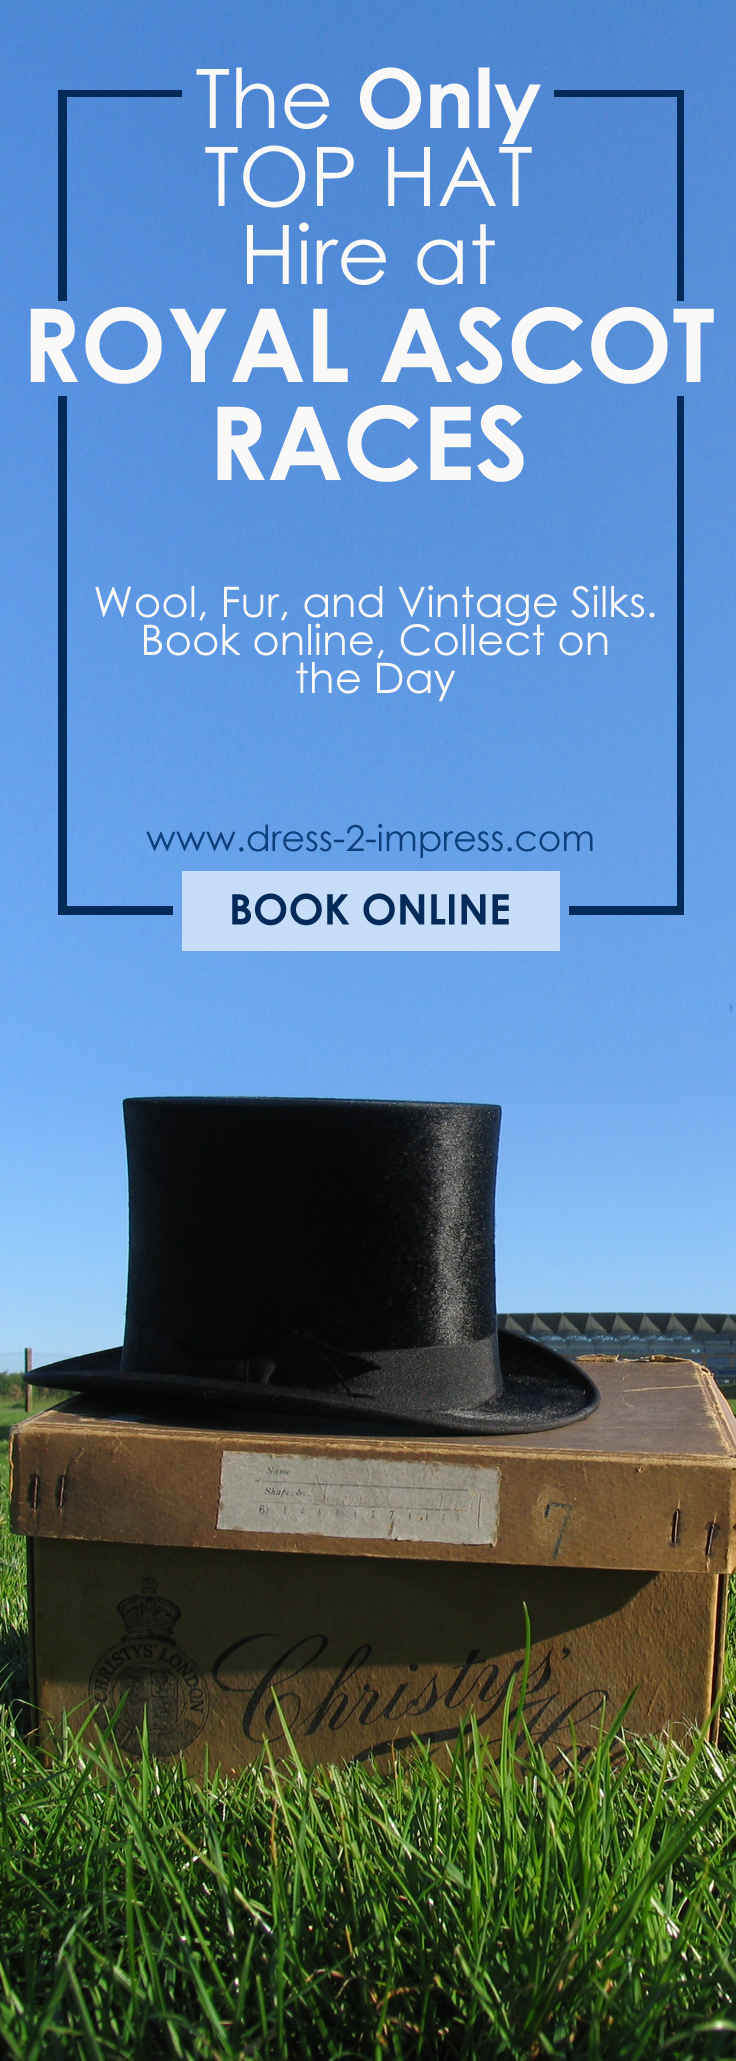 Mens Top Hat Hire. The only Top Hat Hire at Royal Ascot Races. Wool, Fur Melusine and Vintage Silk available. Hats for other events, weddings, available on Mail Order. Also Ladies Hats from Philip Treacy, Jane Taylor, Bundle Maclaren, Rosie Olivia, Nigel Rayment and other leading Milliners.